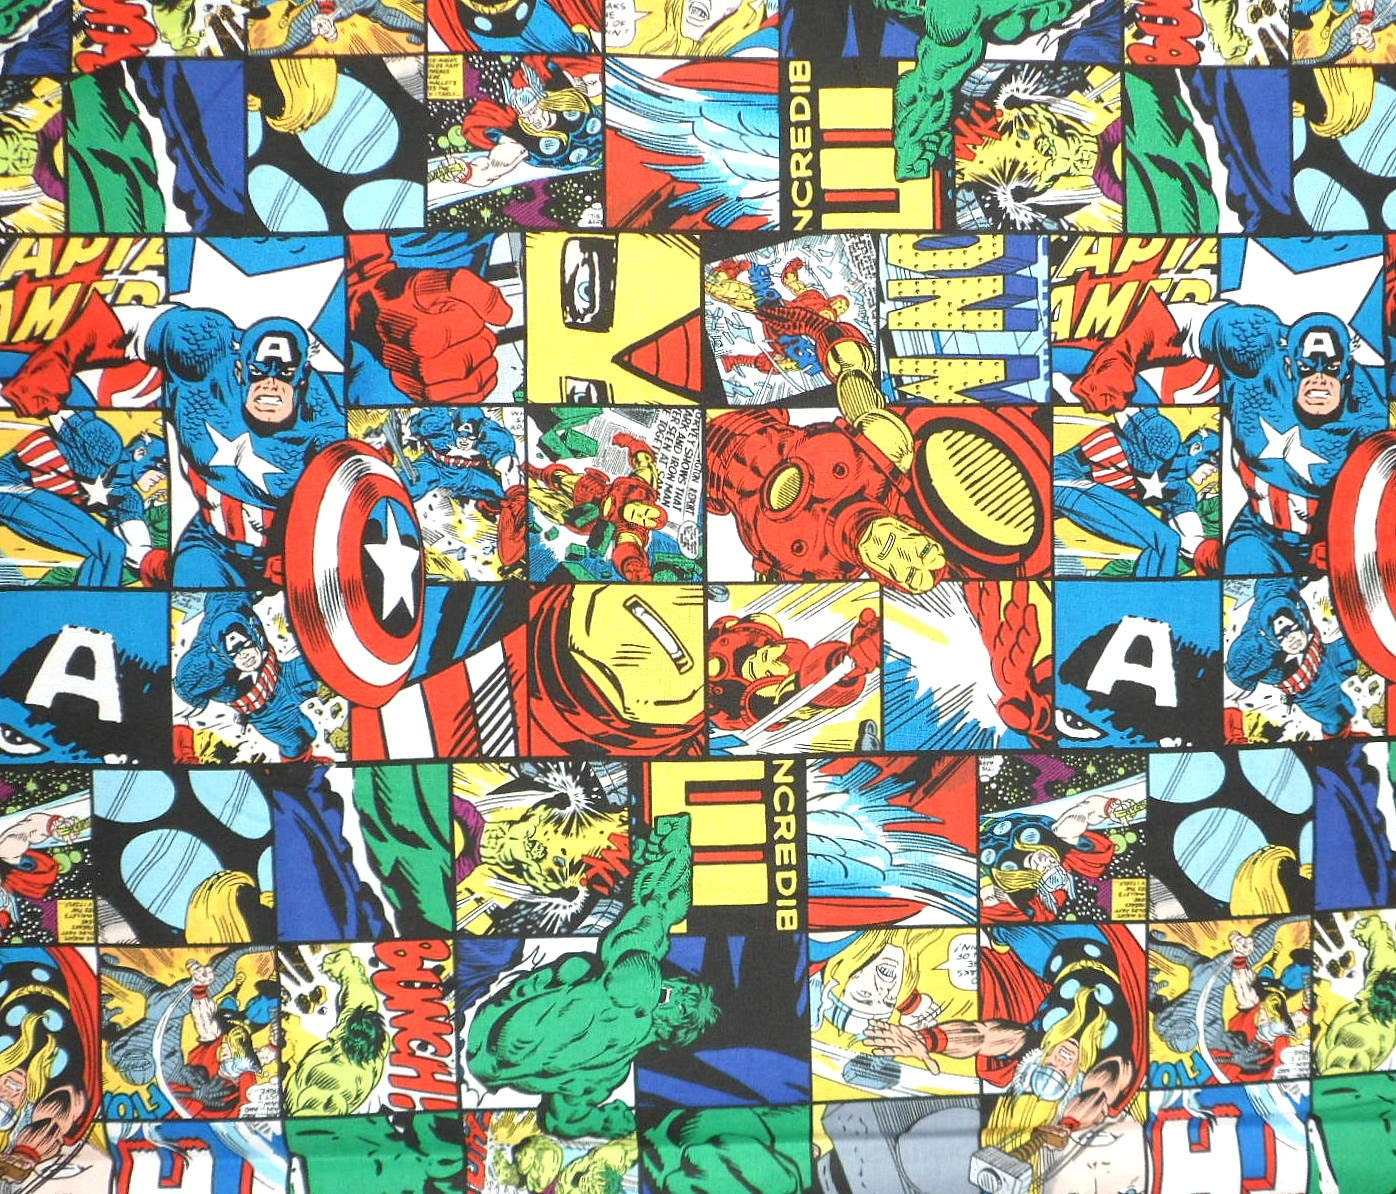 superhero wrapping paper Are you interested in our wrapping paper rolls with our wrapping paper rolls, you need look no further discover now homepage search wrapping paper rolls more popular searches superhero wrapping paper and gift tags by heather alstead design.